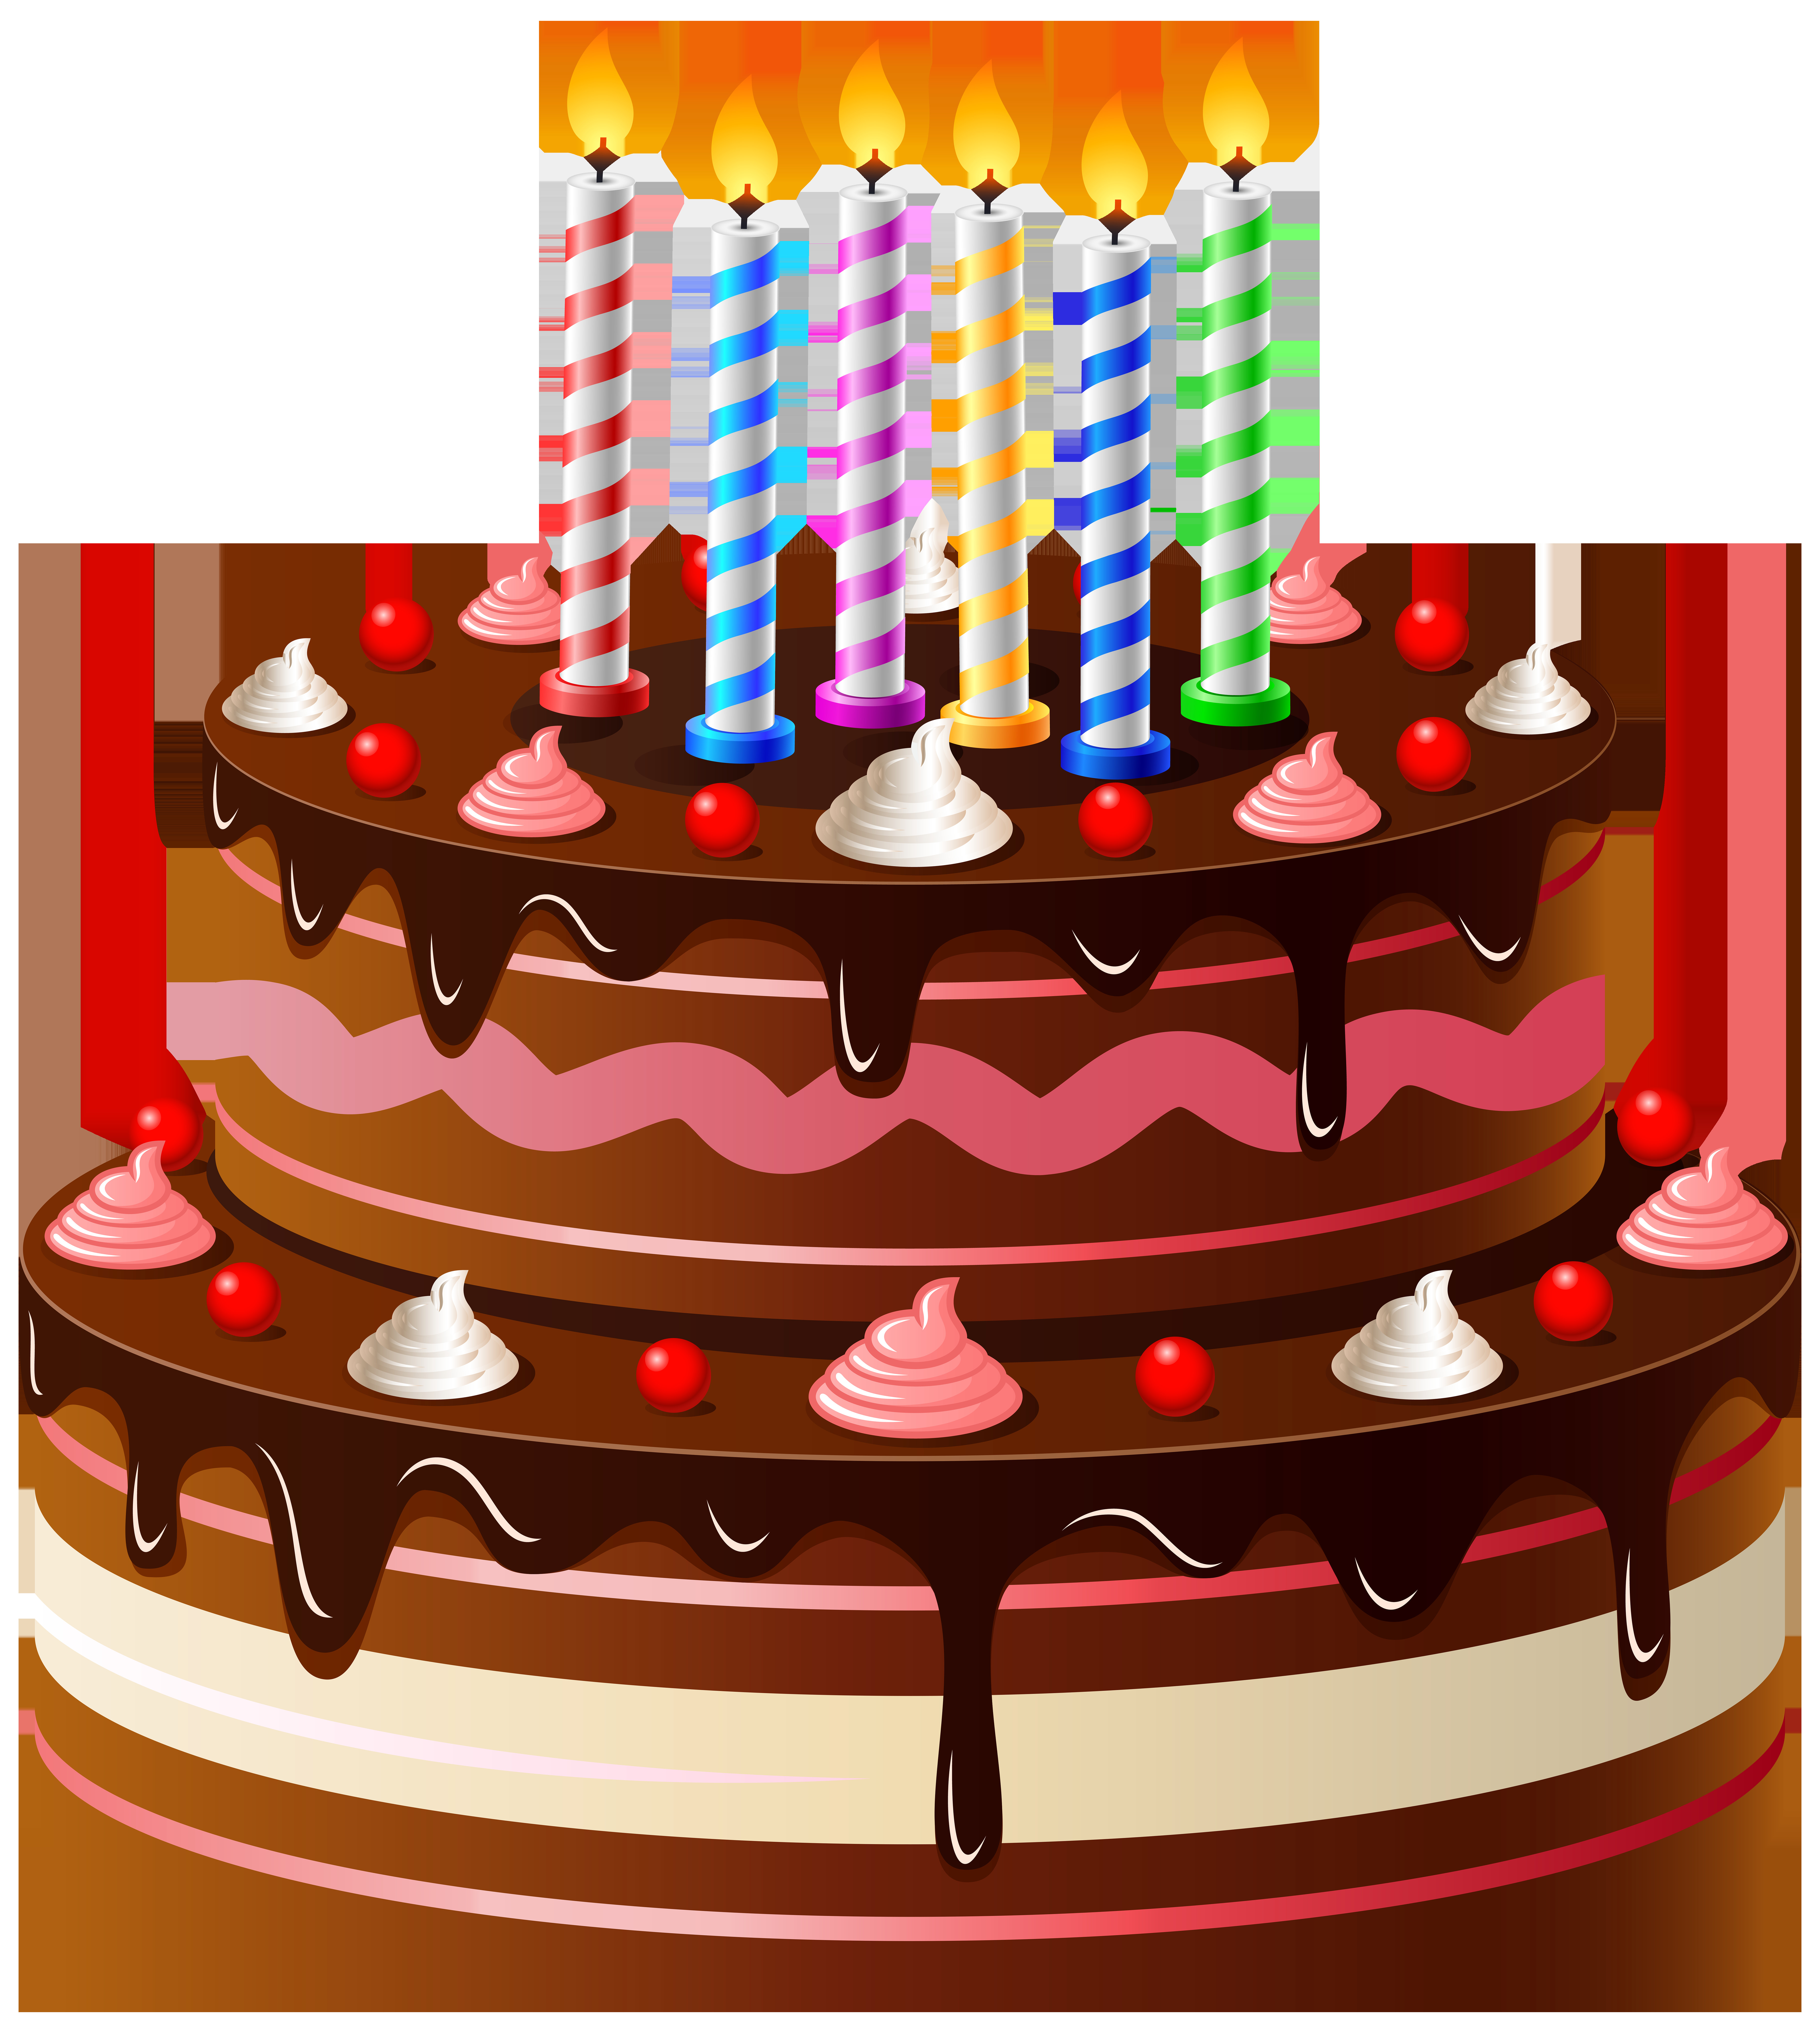 Clipart Birthday Cake  Birthday cake clipart png BBCpersian7 collections